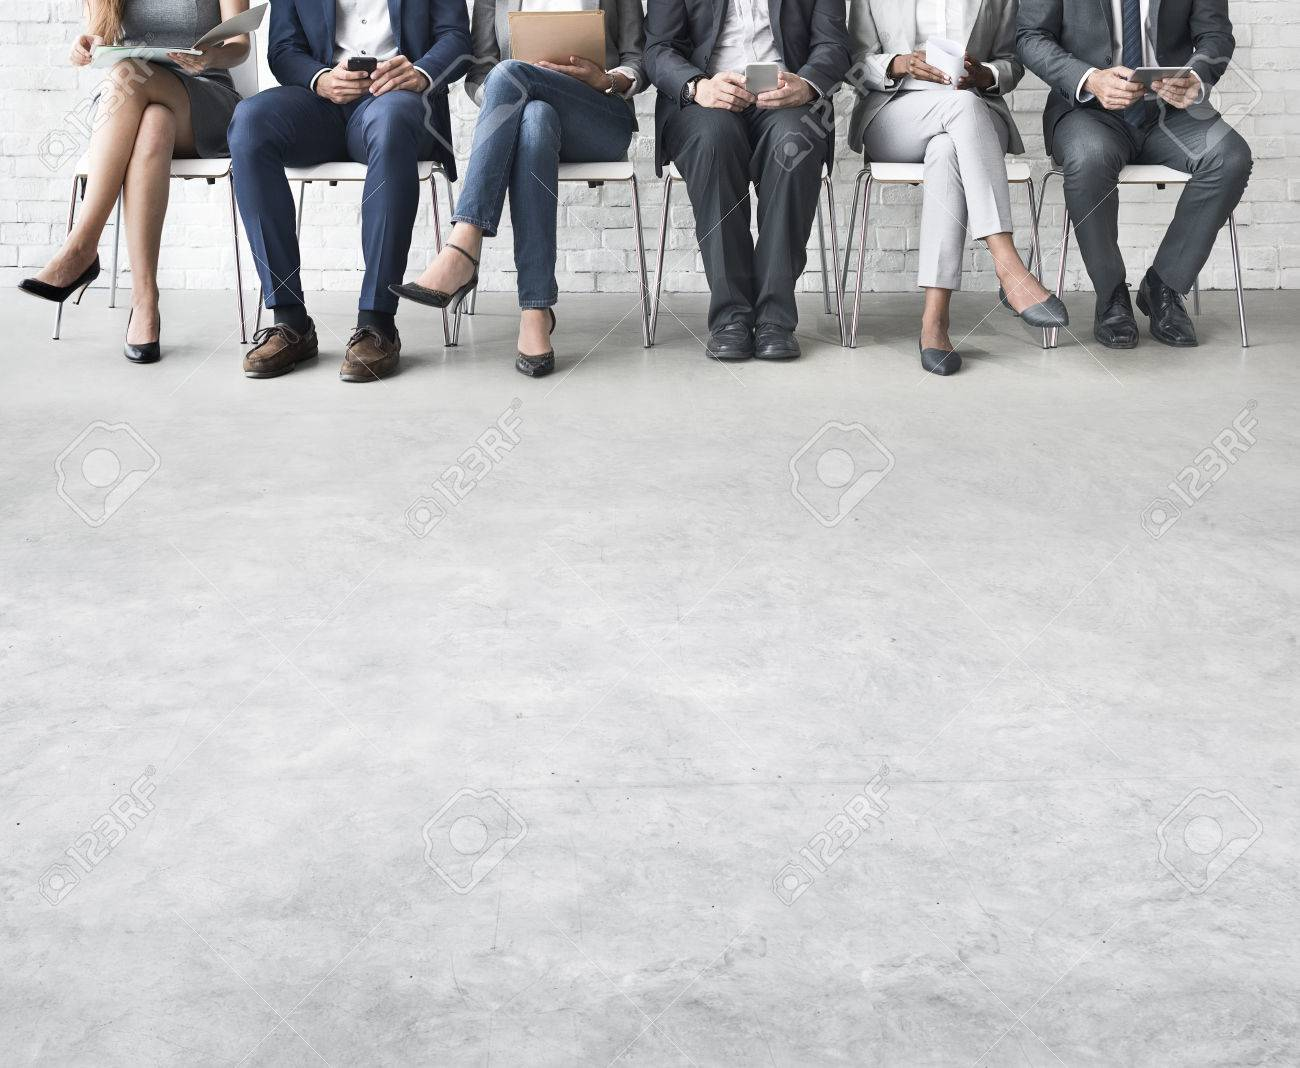 Business People Meeting Corporate Digital Device Connection Concept - 53123679